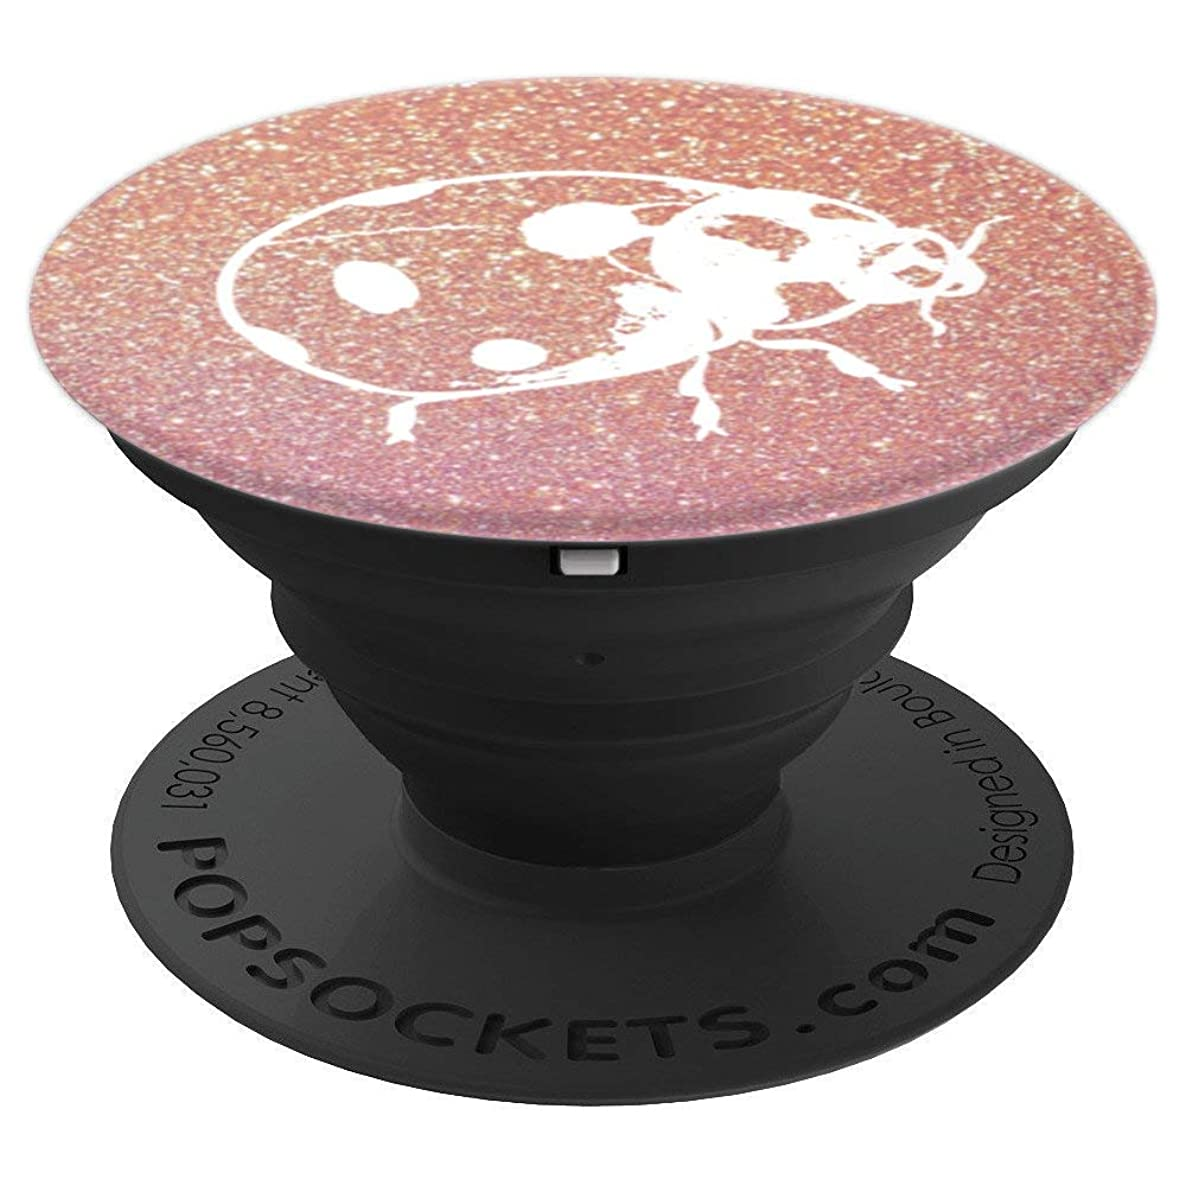 Cute White Ladybug on Rose Gold Background - PopSockets Grip and Stand for Phones and Tablets